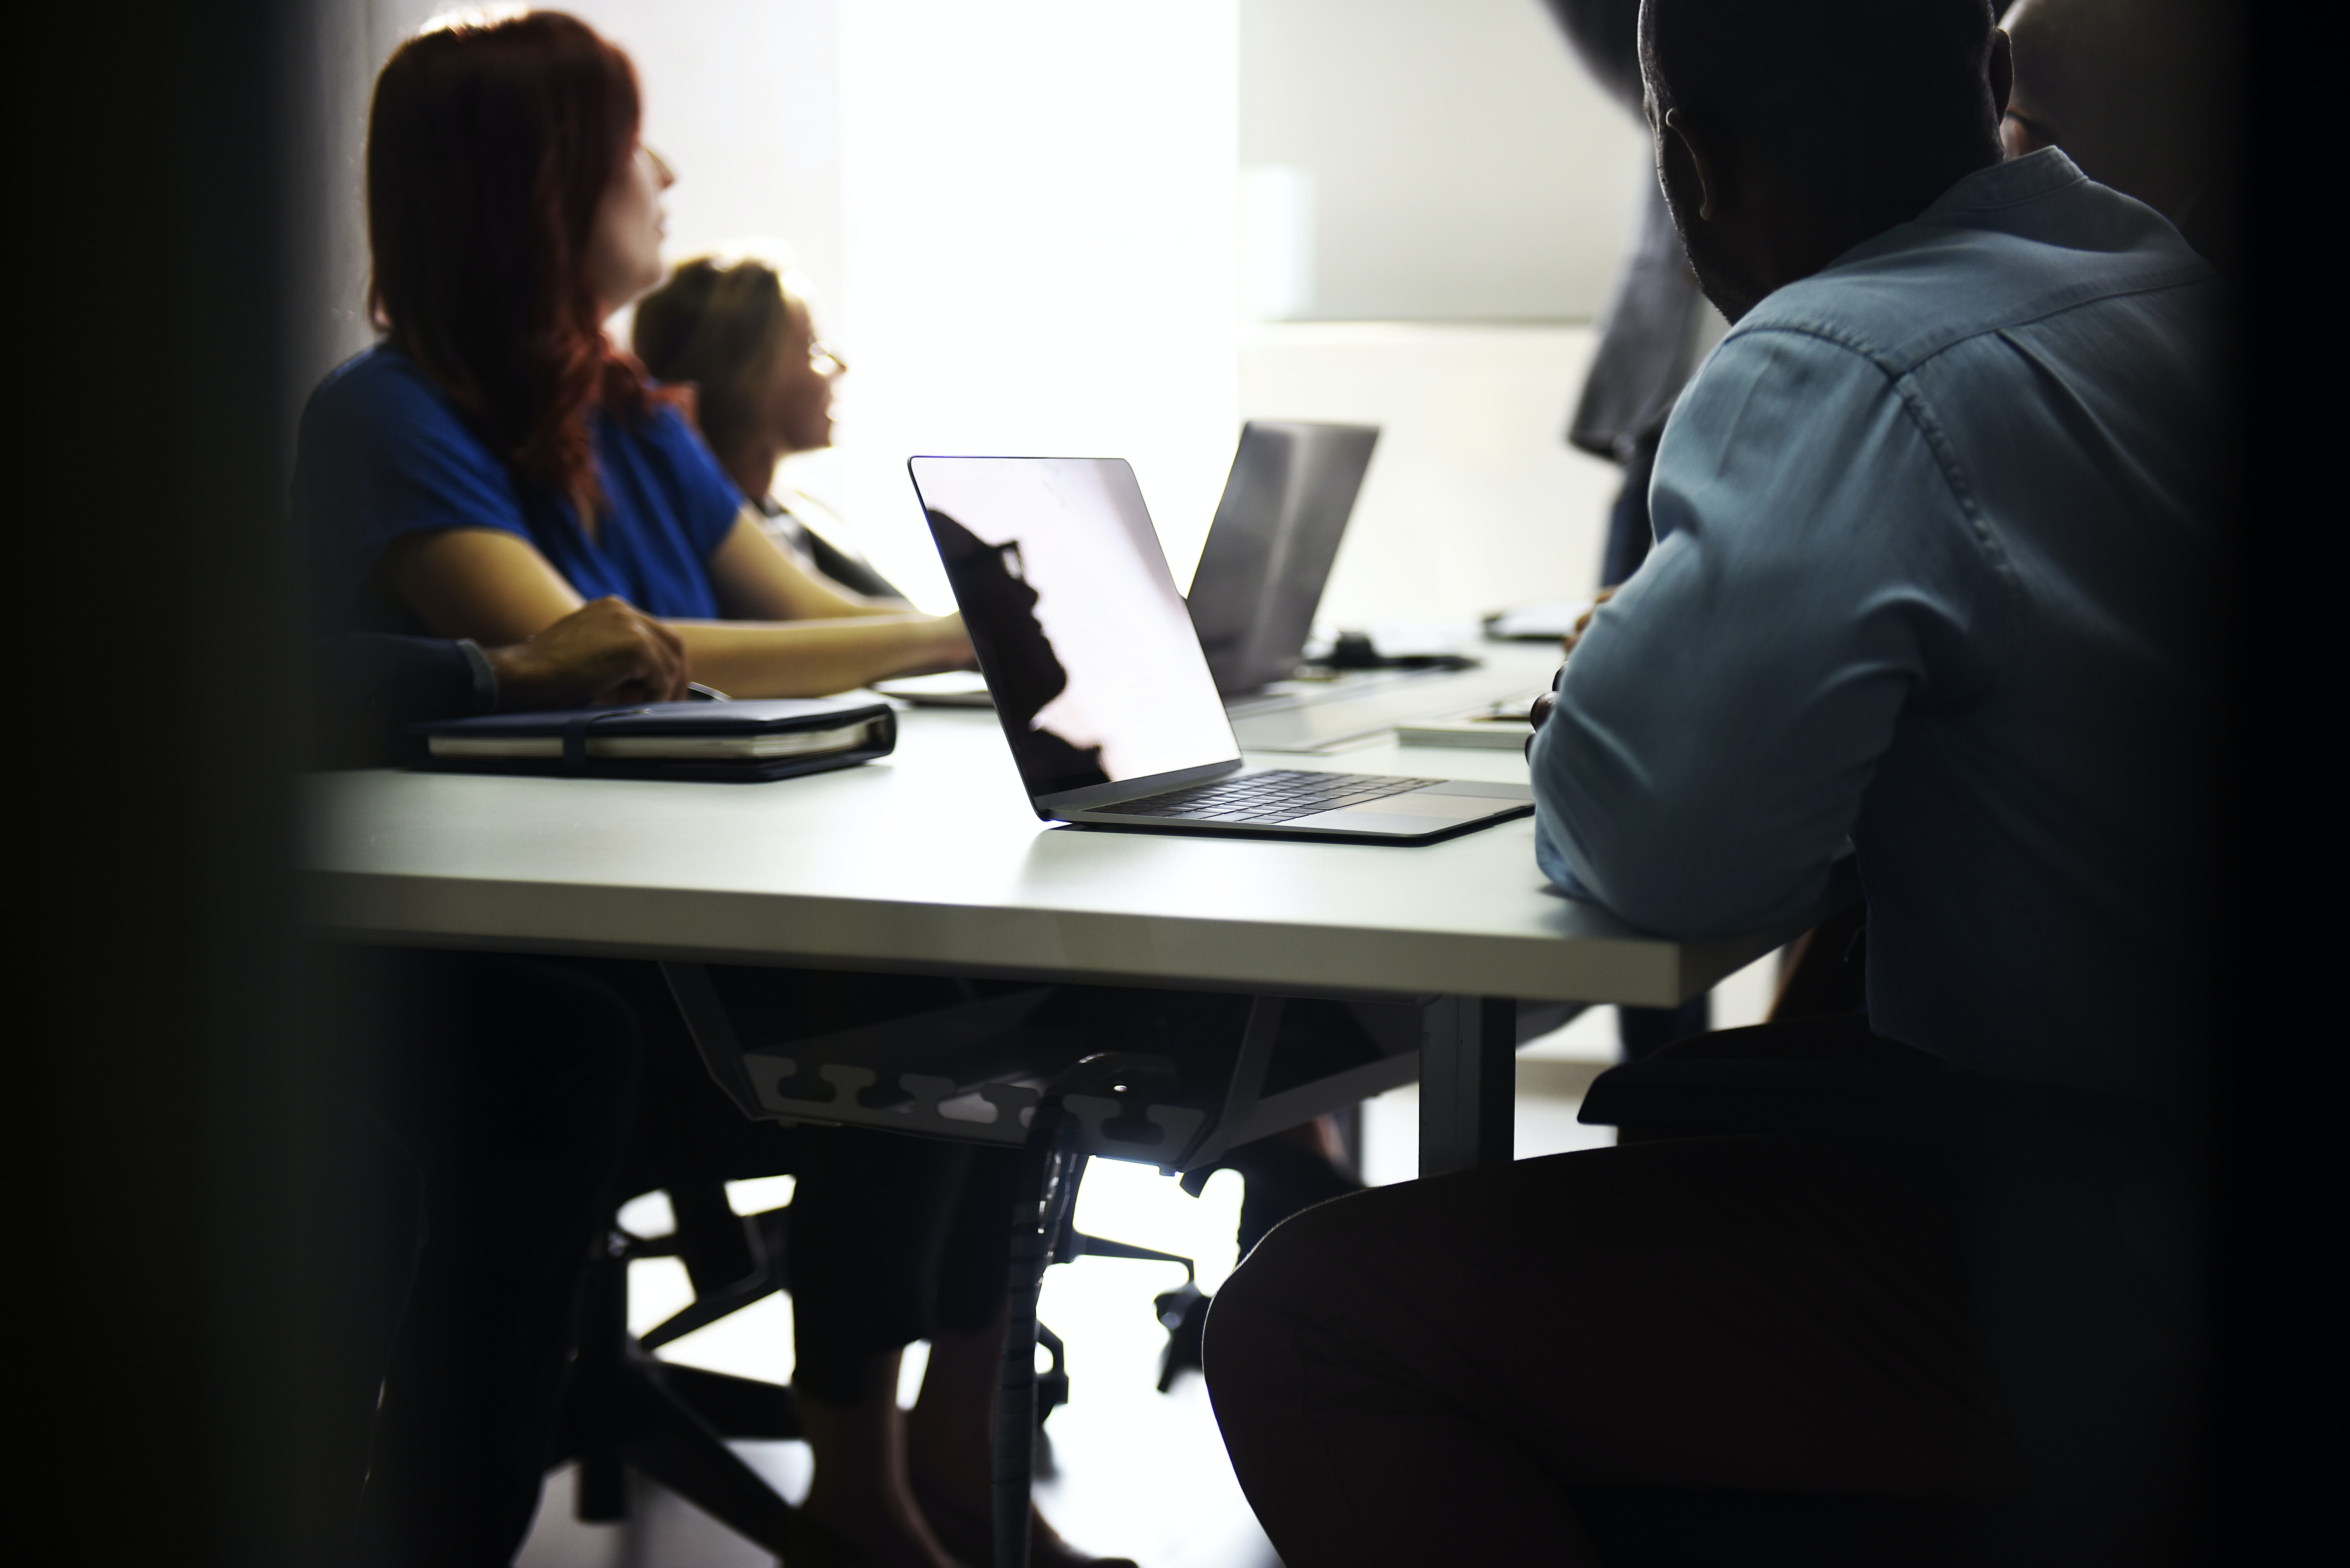 Empower team members to make decisions